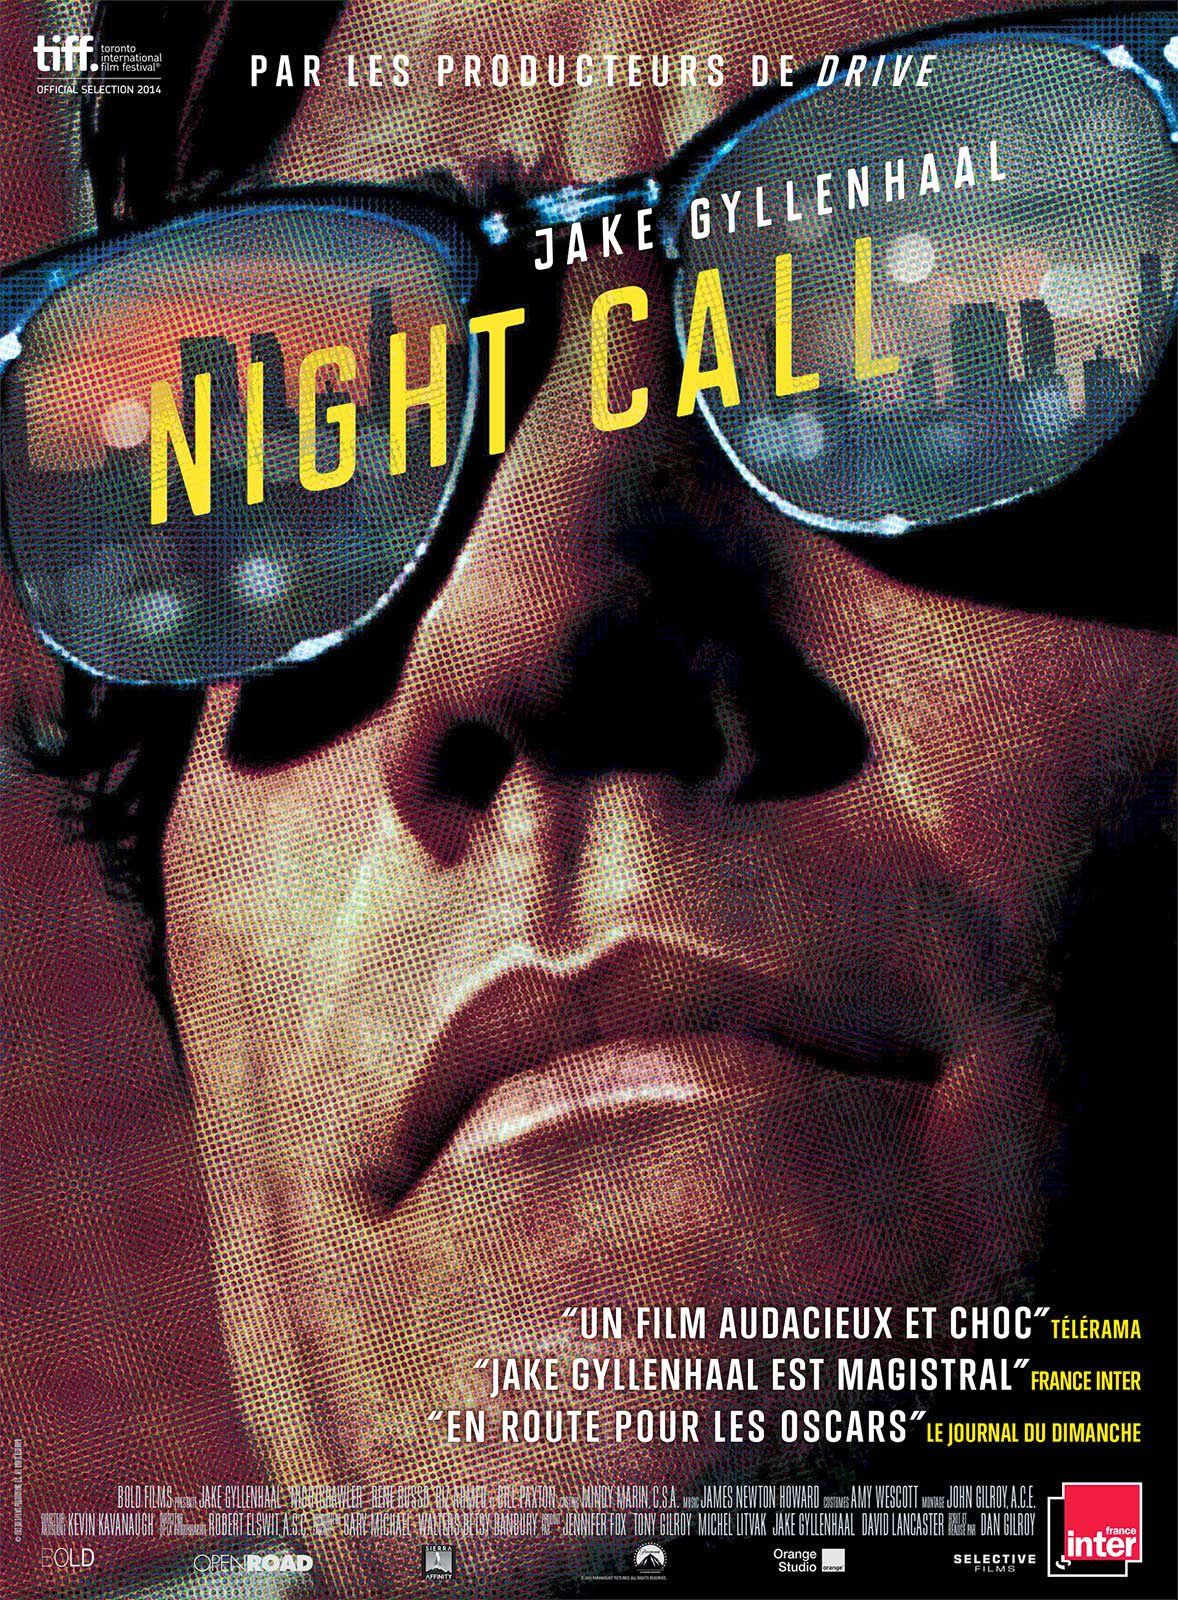 NIGHT CALL / CINEMA / Dan Gilroy. 2014